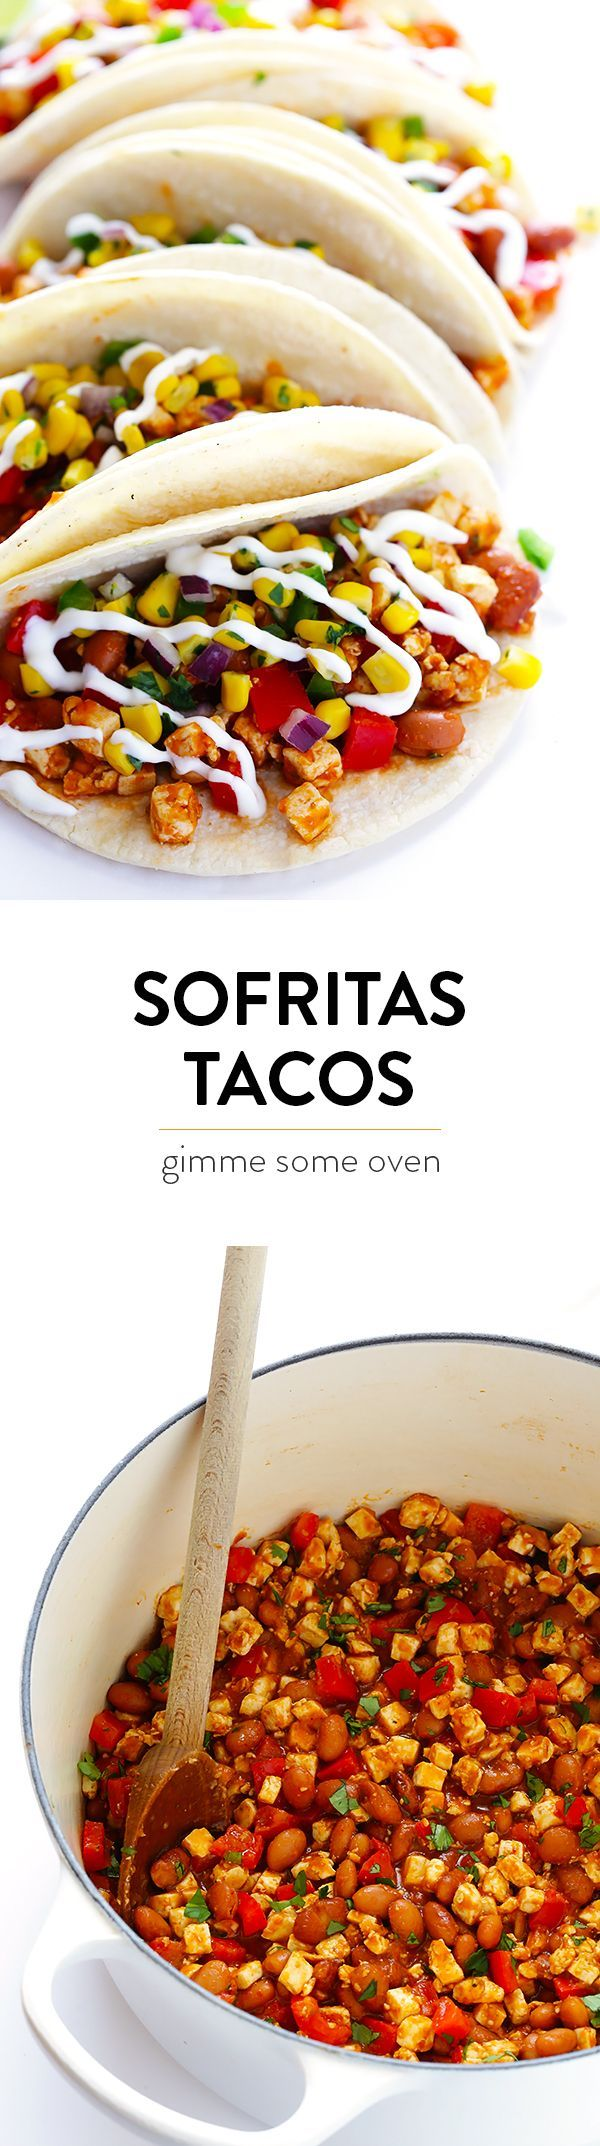 These Chipotle Sofritas (Tofu) Tacos are quick and easy to prepare, and made with a heavenly Mexican chipotle tomato sauce. Plus, they're also naturally gluten-free and vegan!